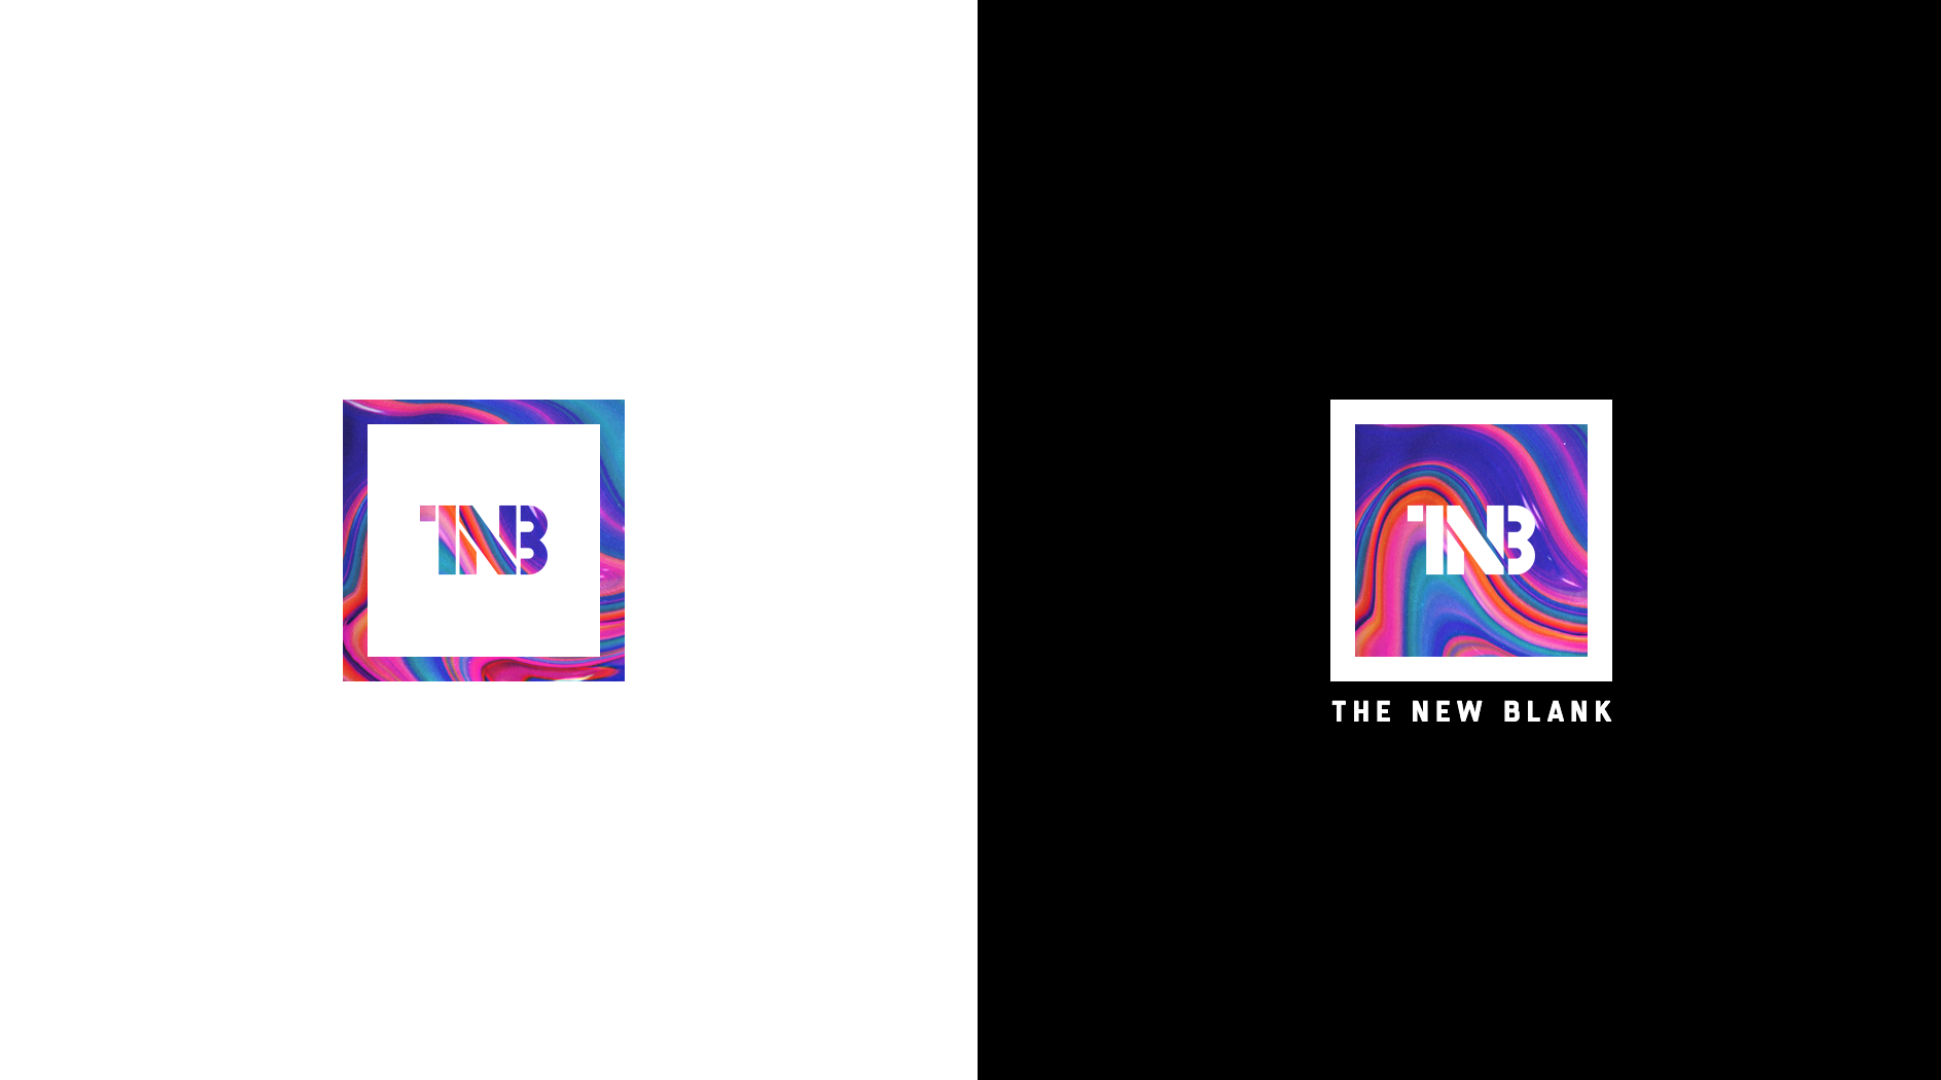 TNB_Brand_Refresh_Exploration_14